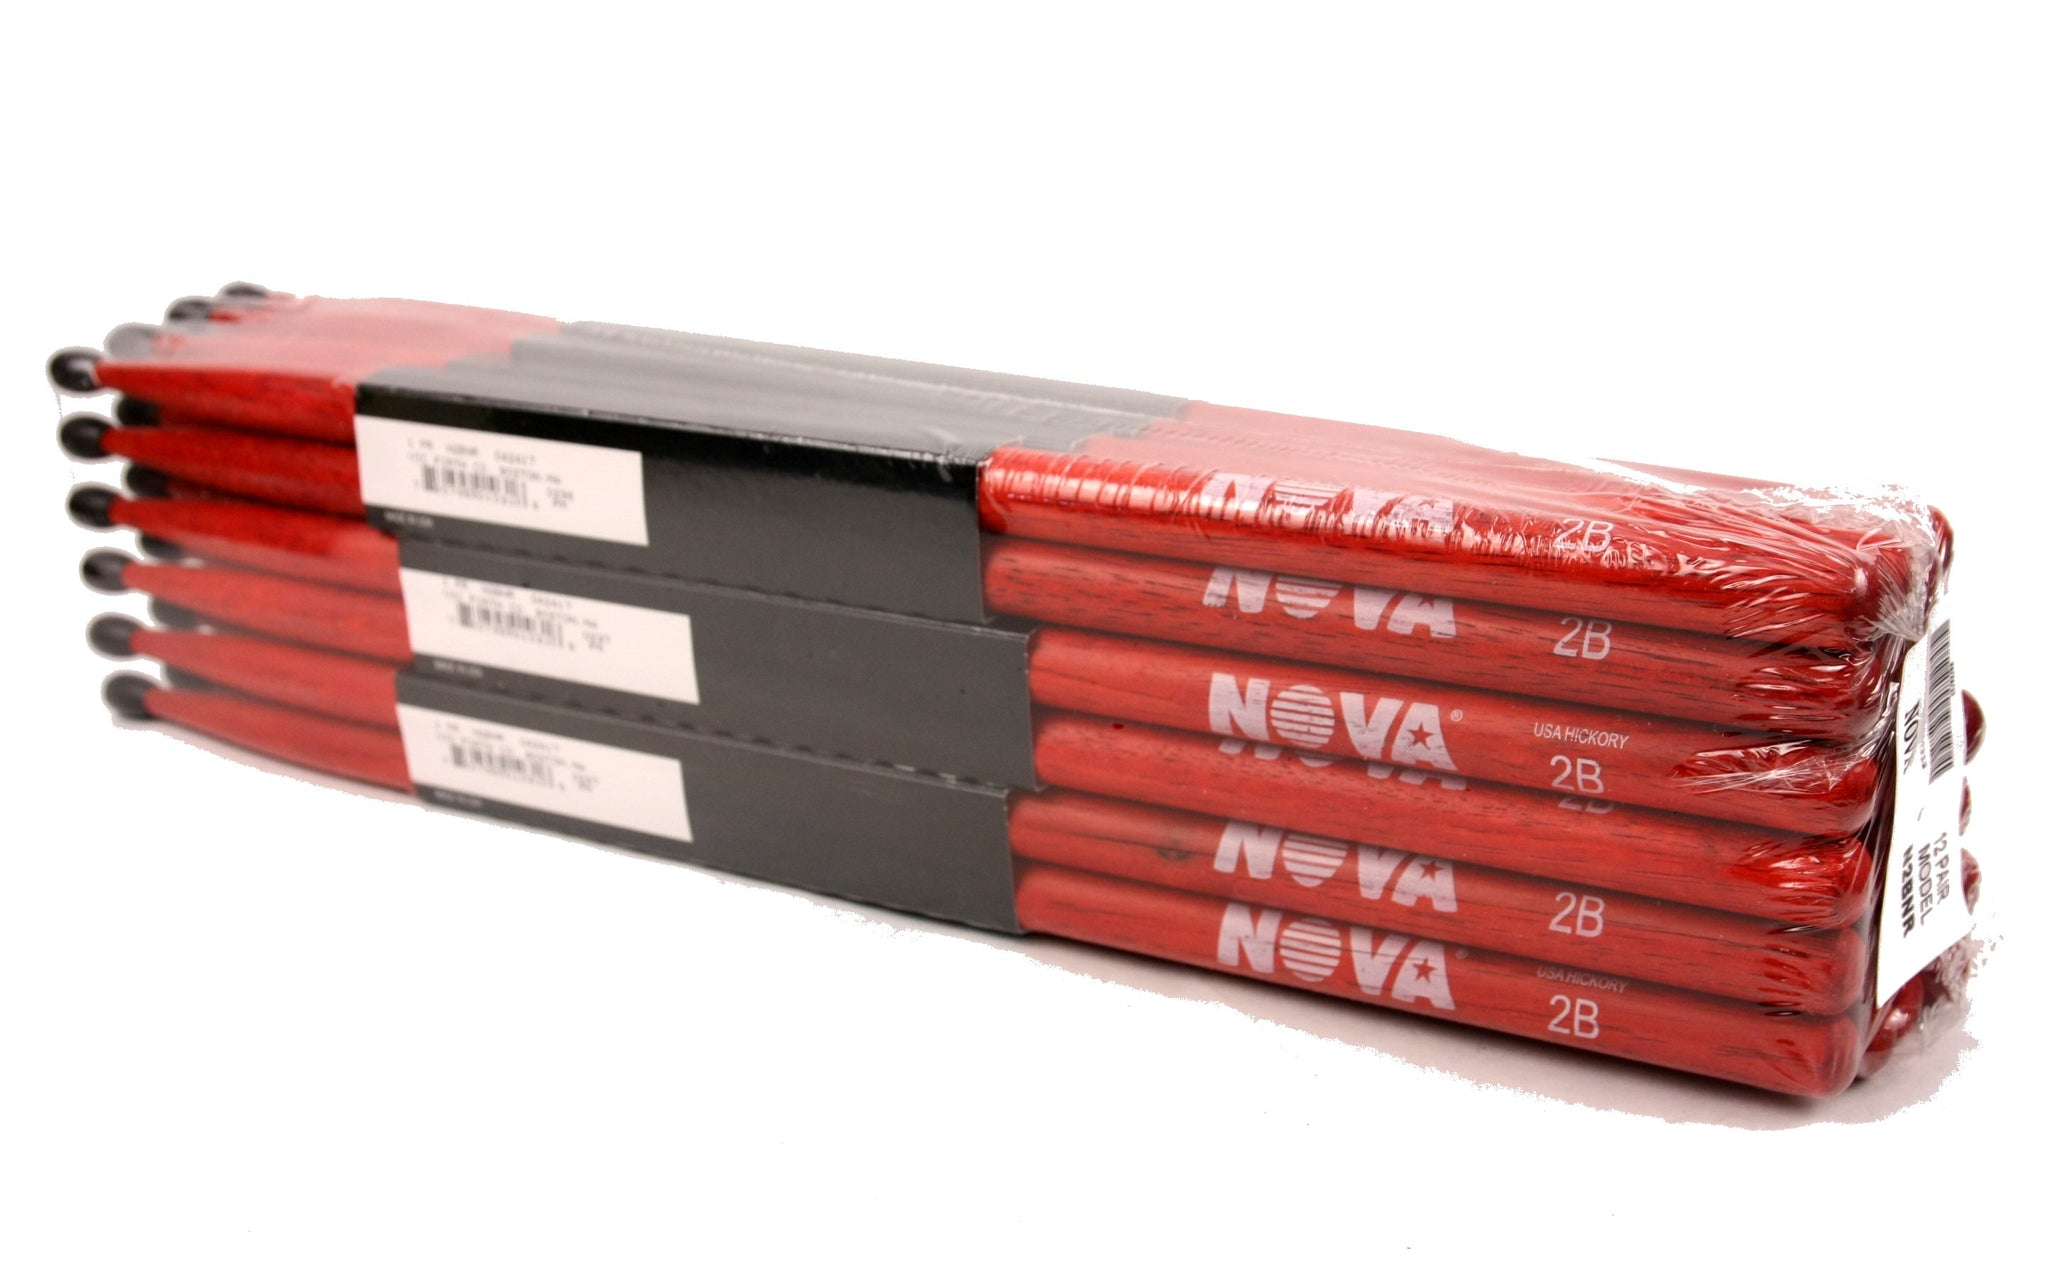 (12-Pairs) Vic Firth® NOVA® 2B Hickory Drumsticks, Red Sticks, Black Nylon Tip. #N2BNR